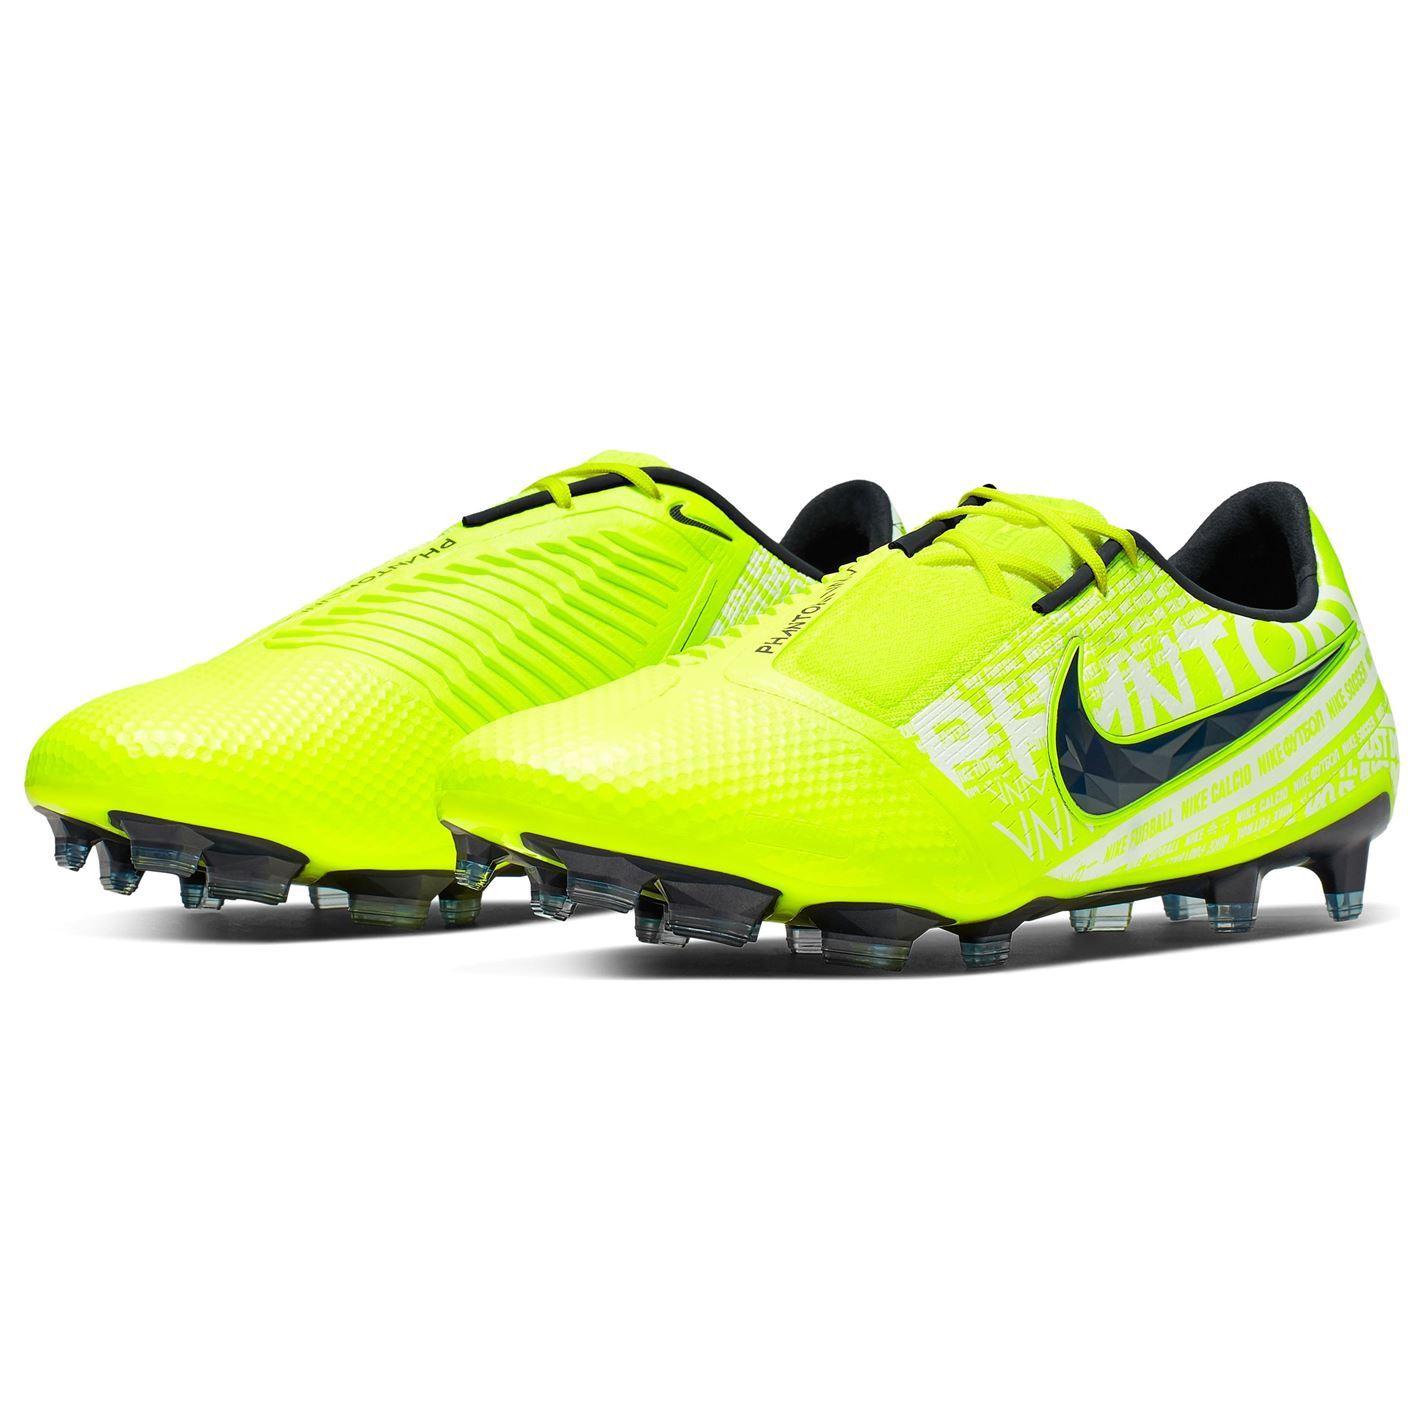 Nike-Phantom-Venom-Elite-Homme-FG-Firm-Ground-Chaussures-De-Football-Chaussures-de-foot-crampons miniature 18